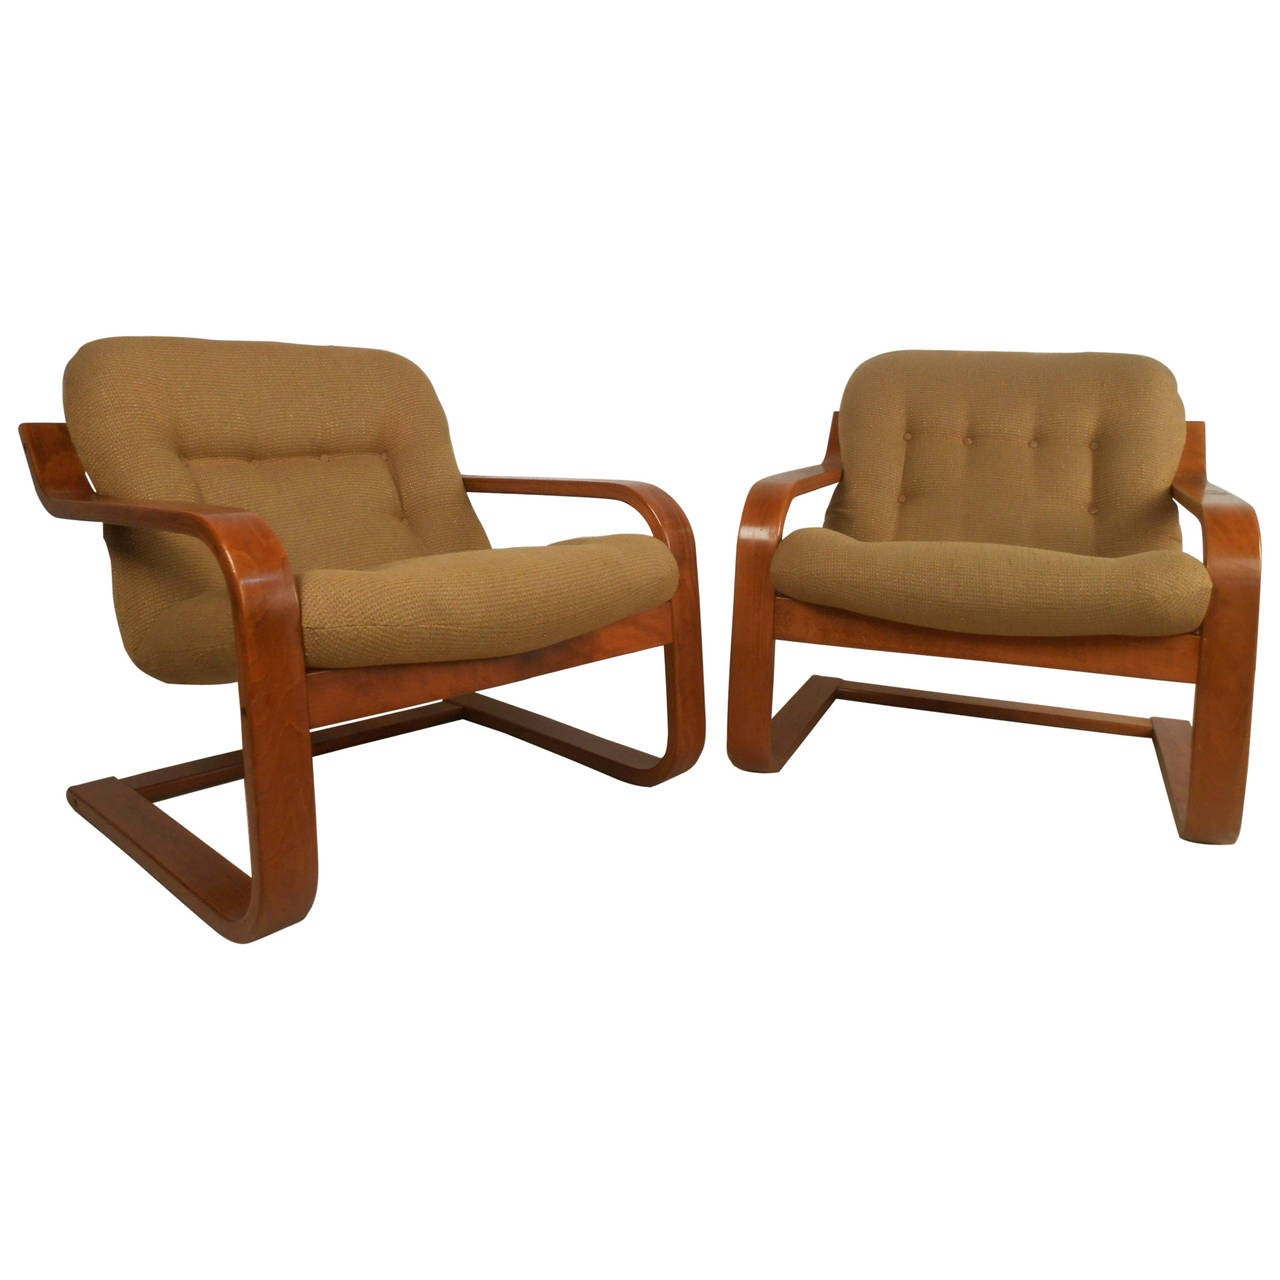 Pair of midcentury scandinavian modern westnofa bentwood for Contemporary furniture chairs